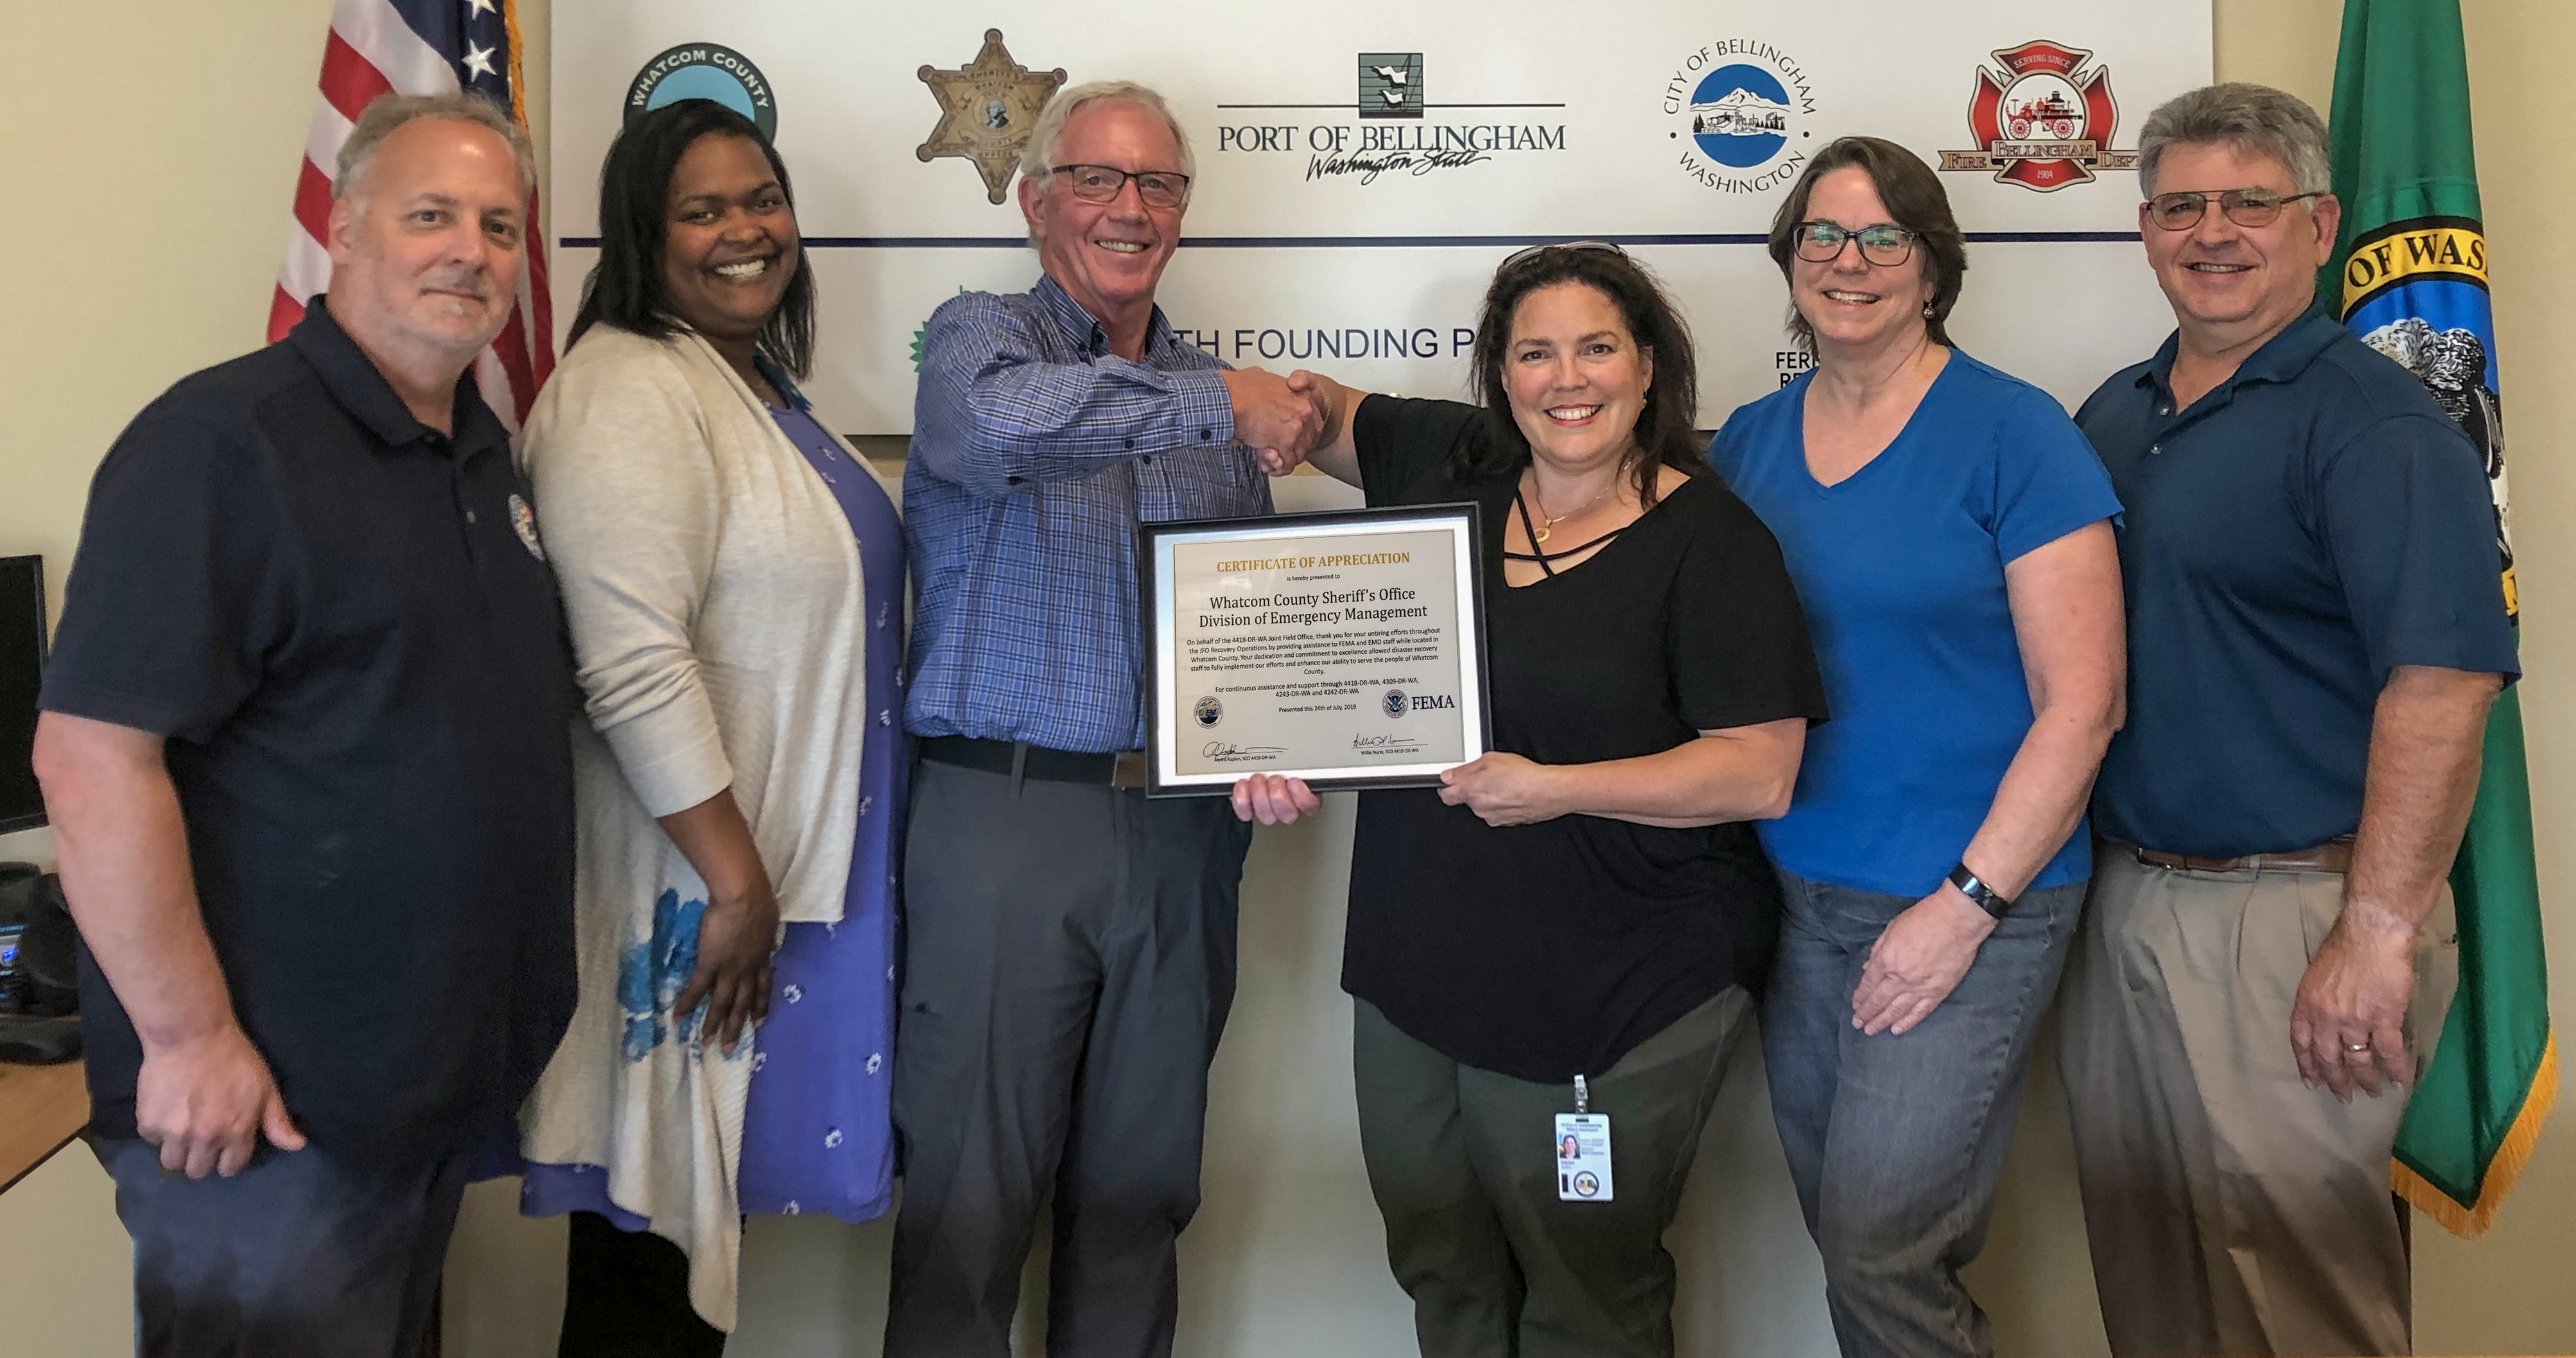 Certificate of Appreciation Presented to Whatcom County Sheriff's